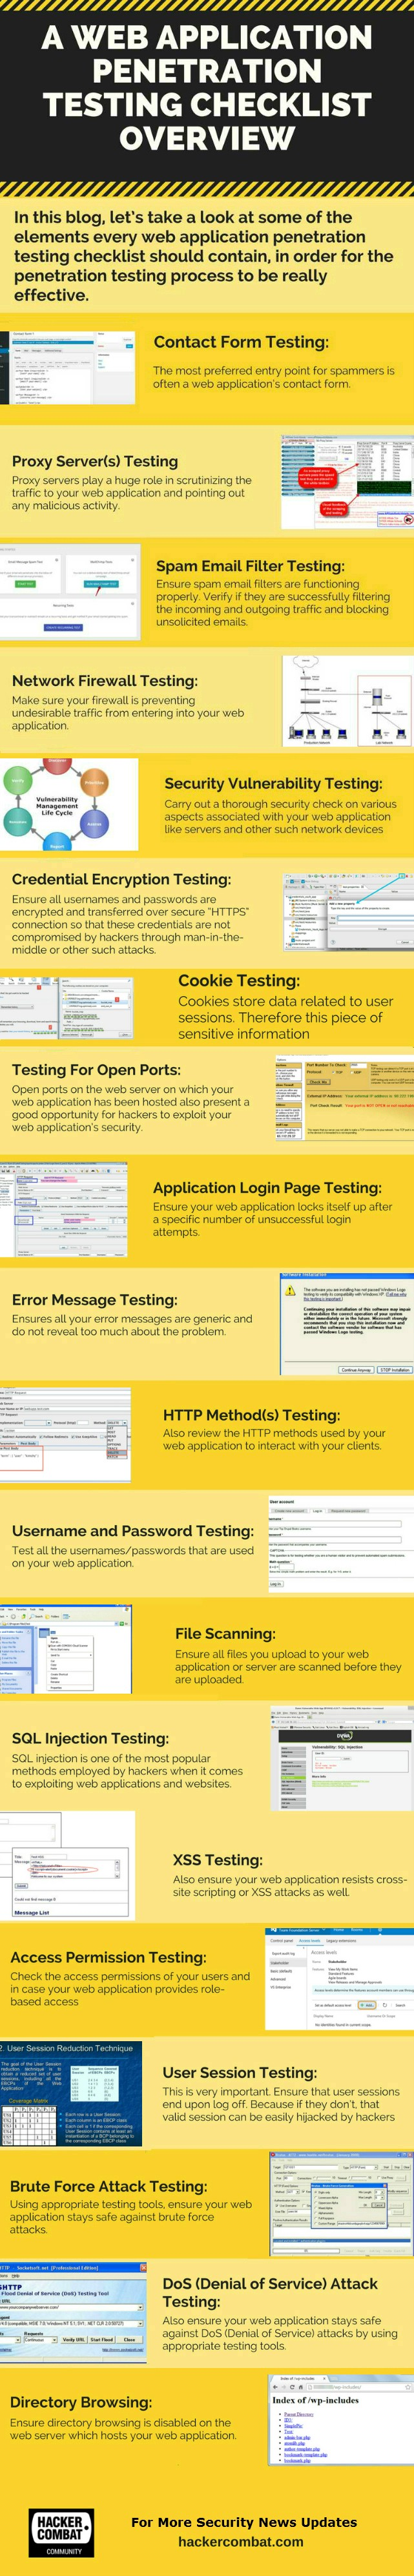 Complete Checklist Guide for Web Application Penetration Testing